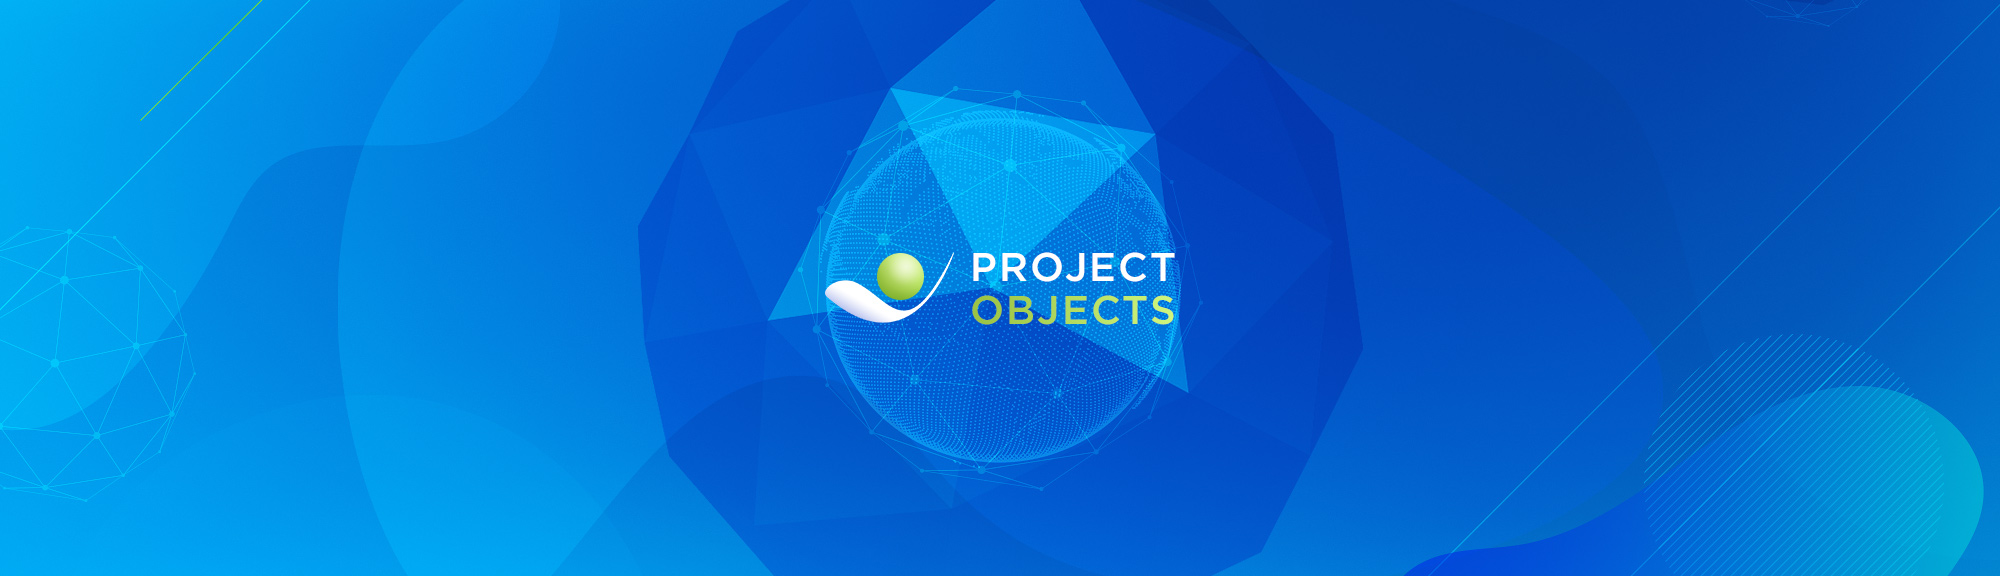 Project Objects